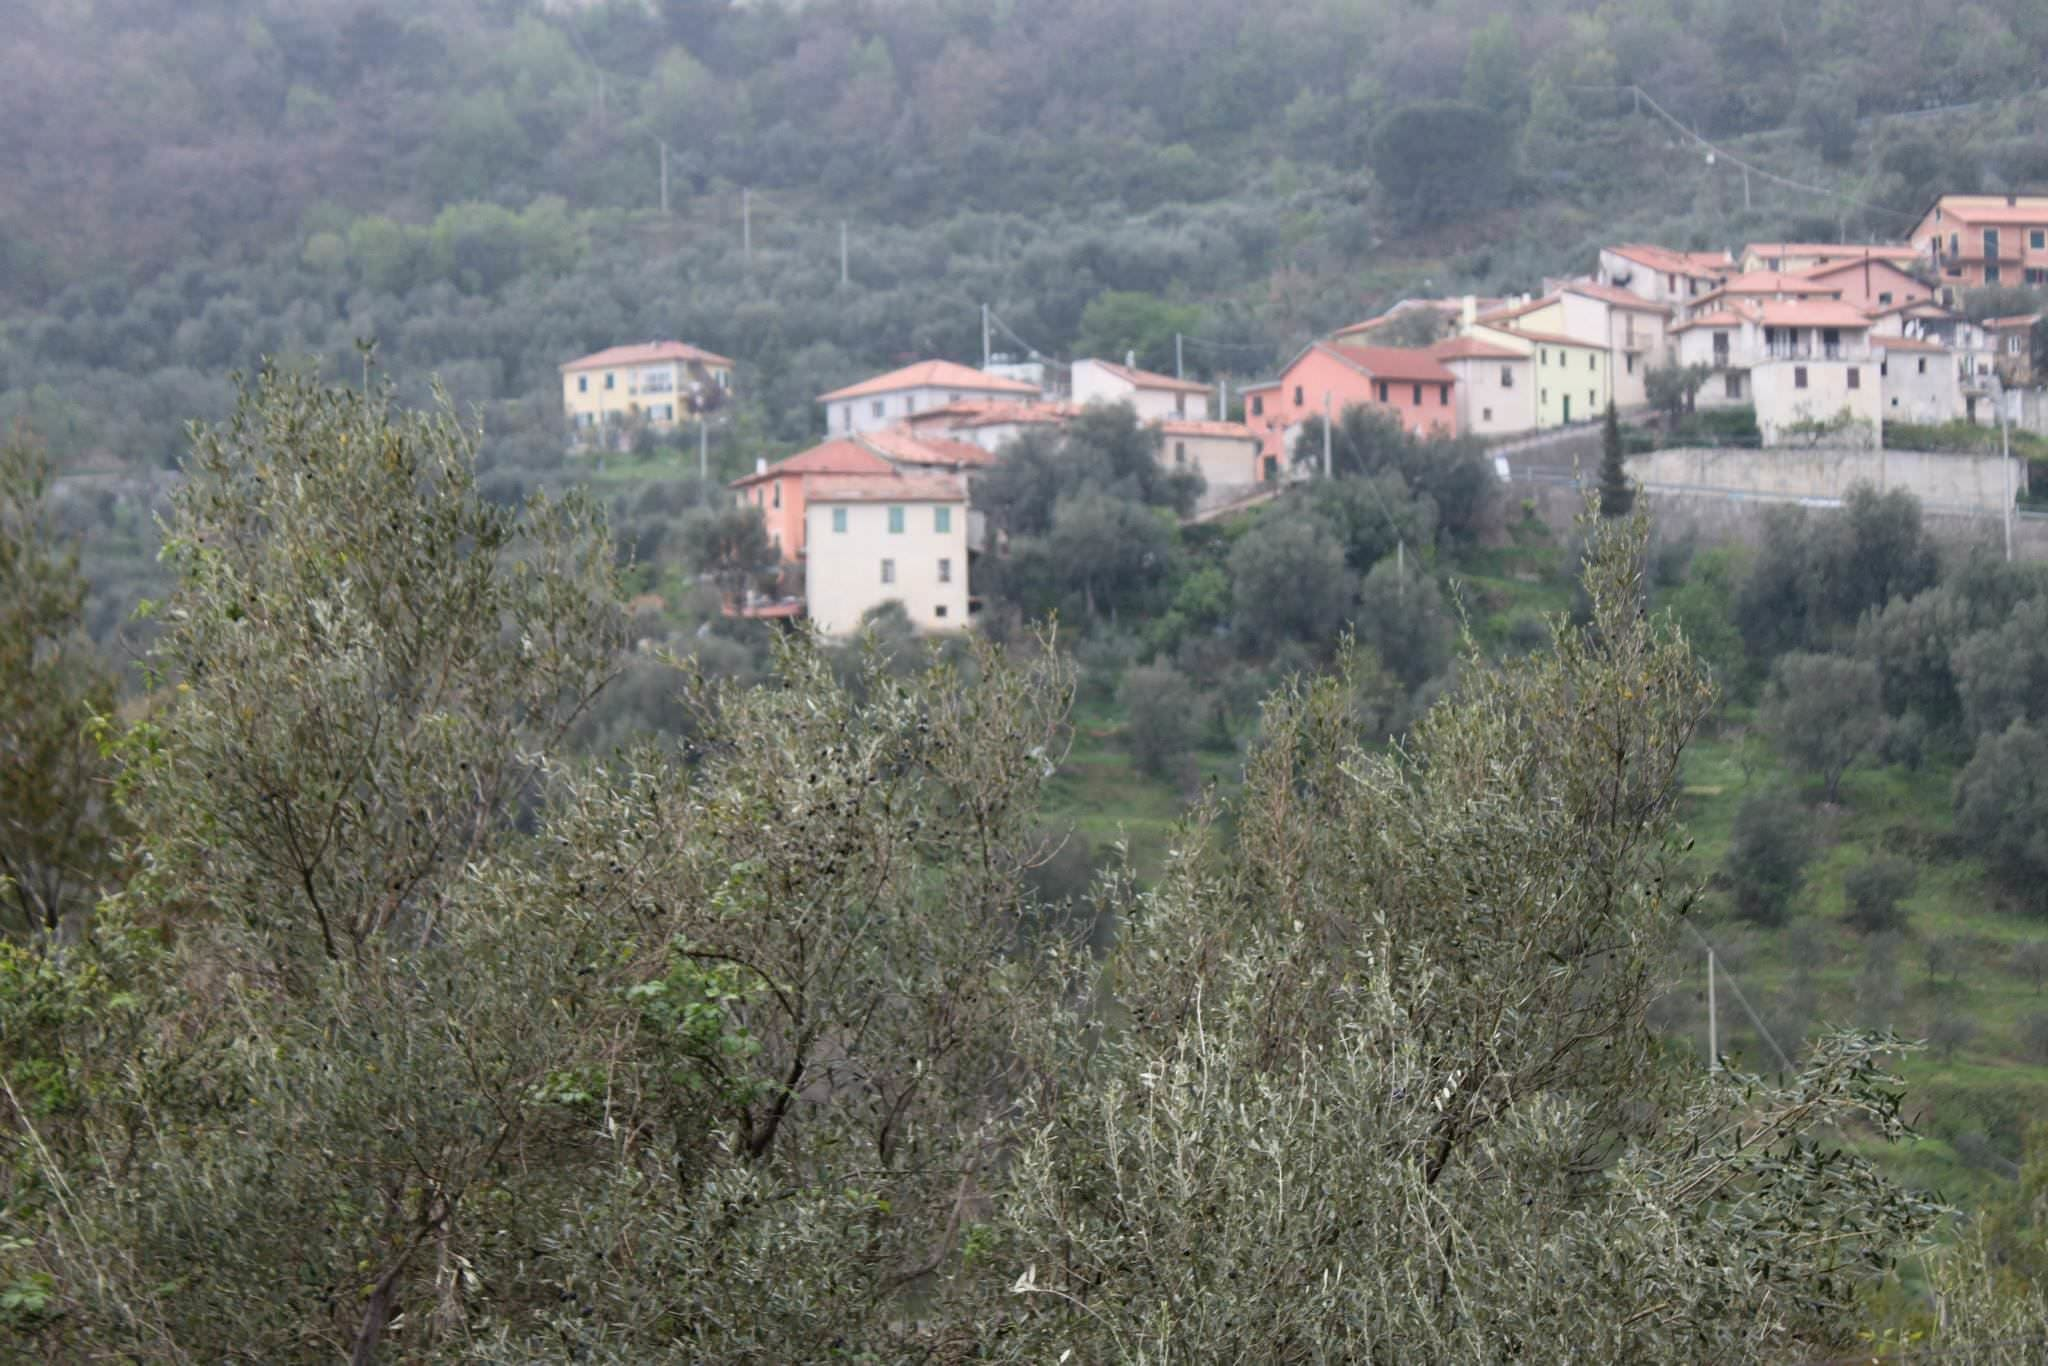 Village of Liguria and olive trees of Taggiasche olives